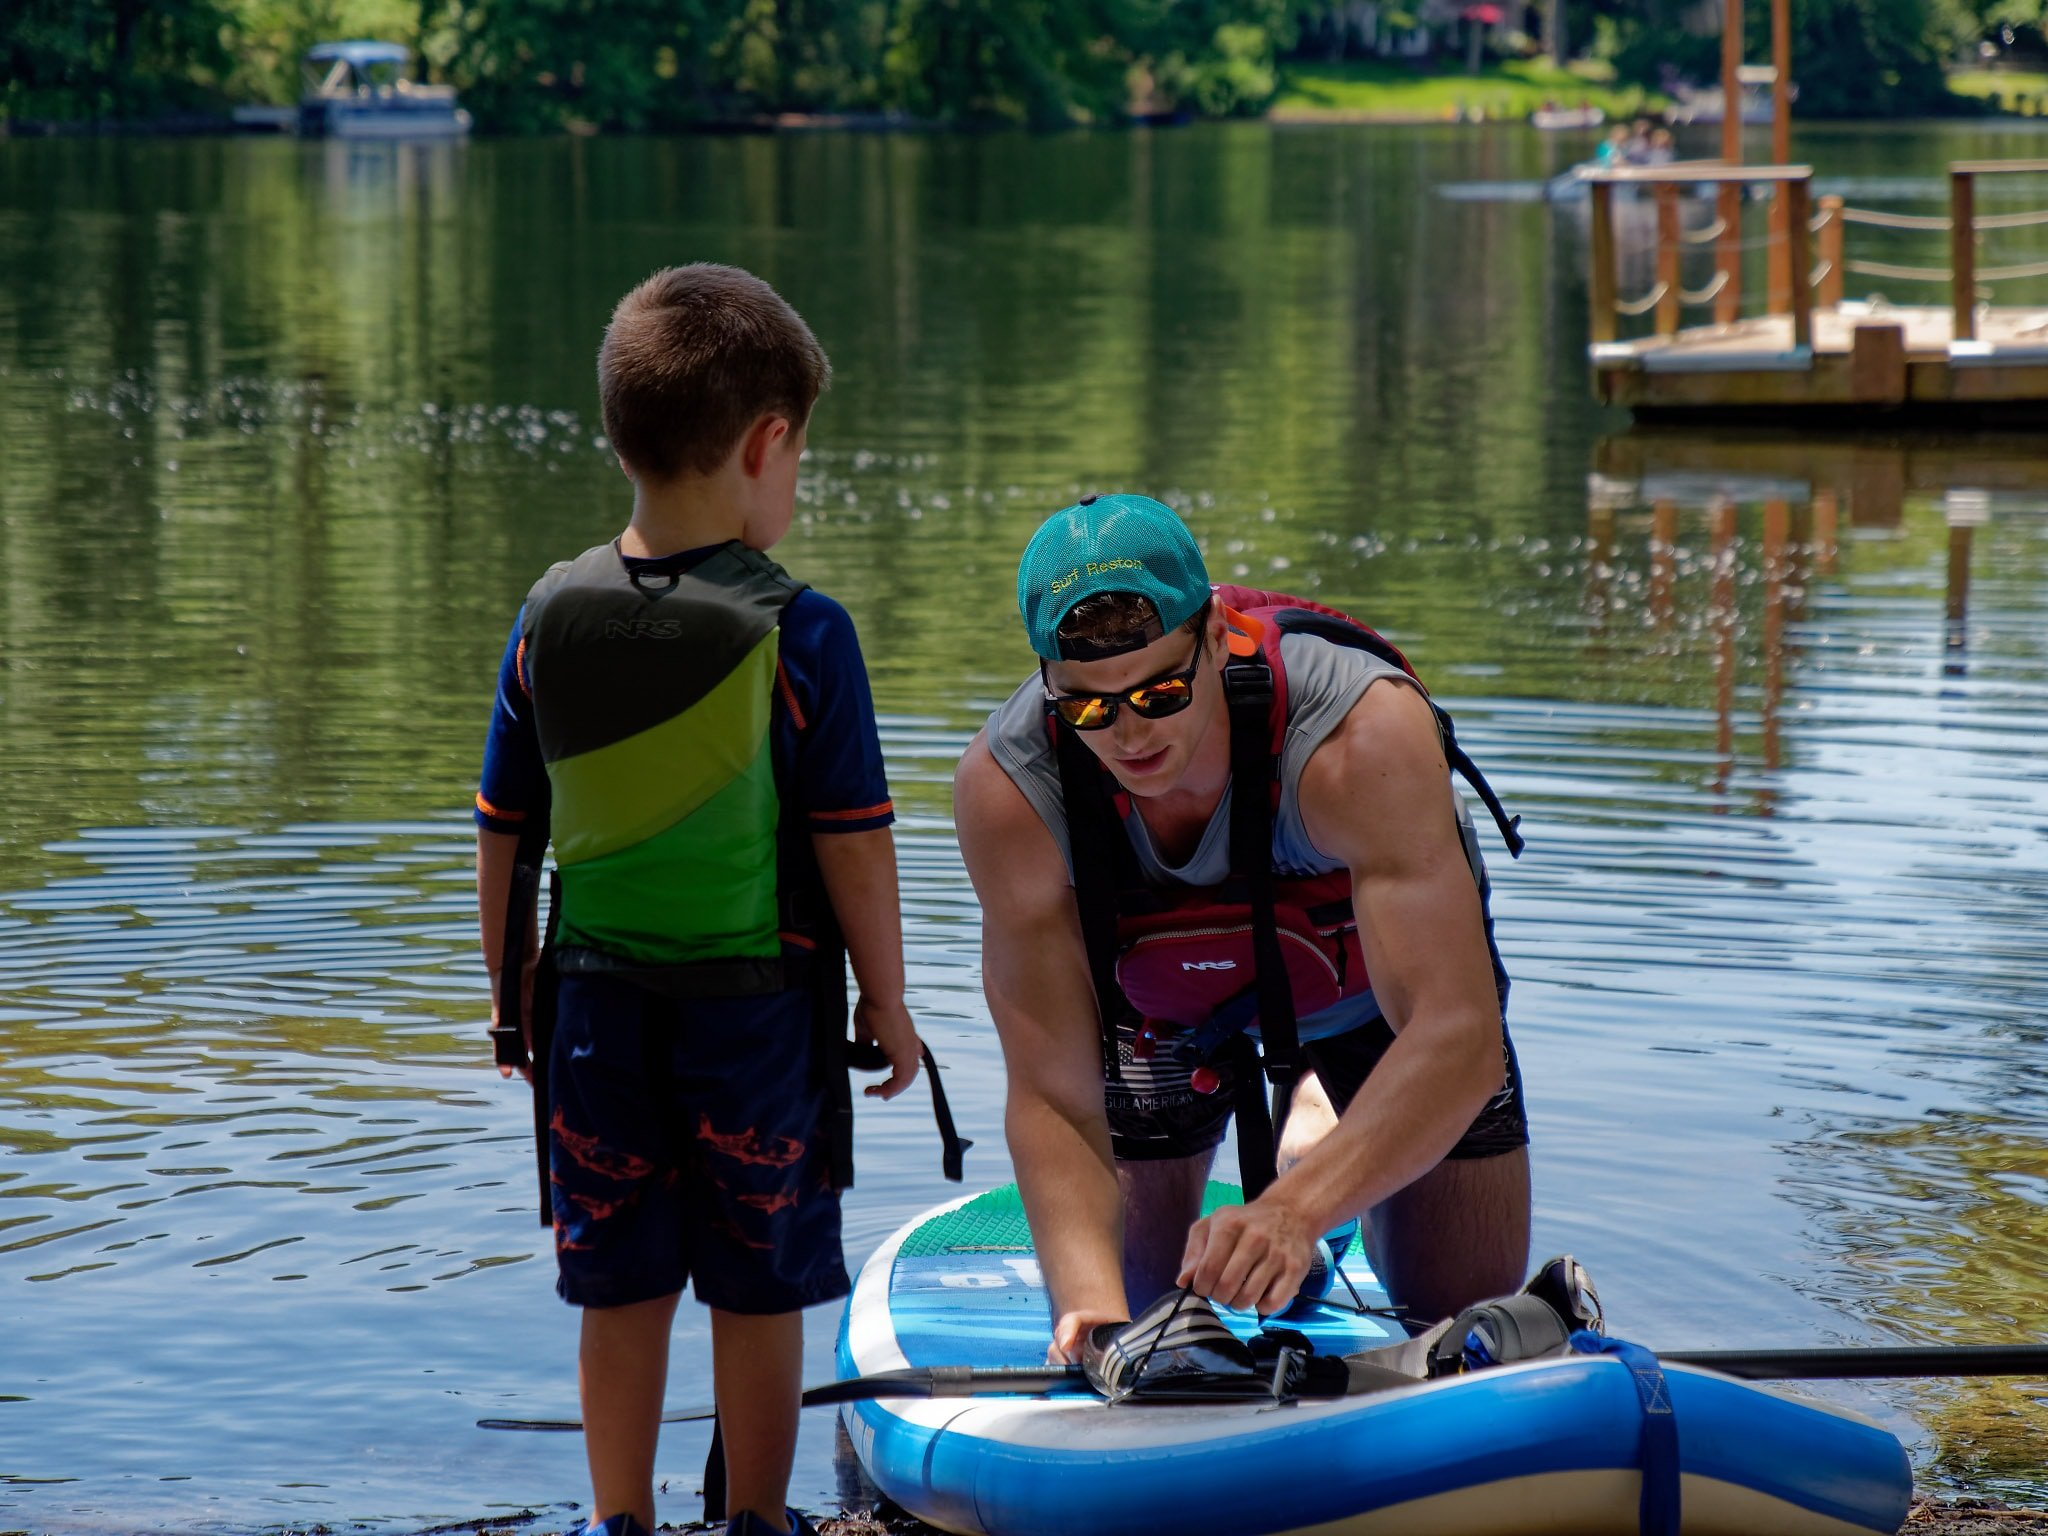 Small child beginner paddle boarder